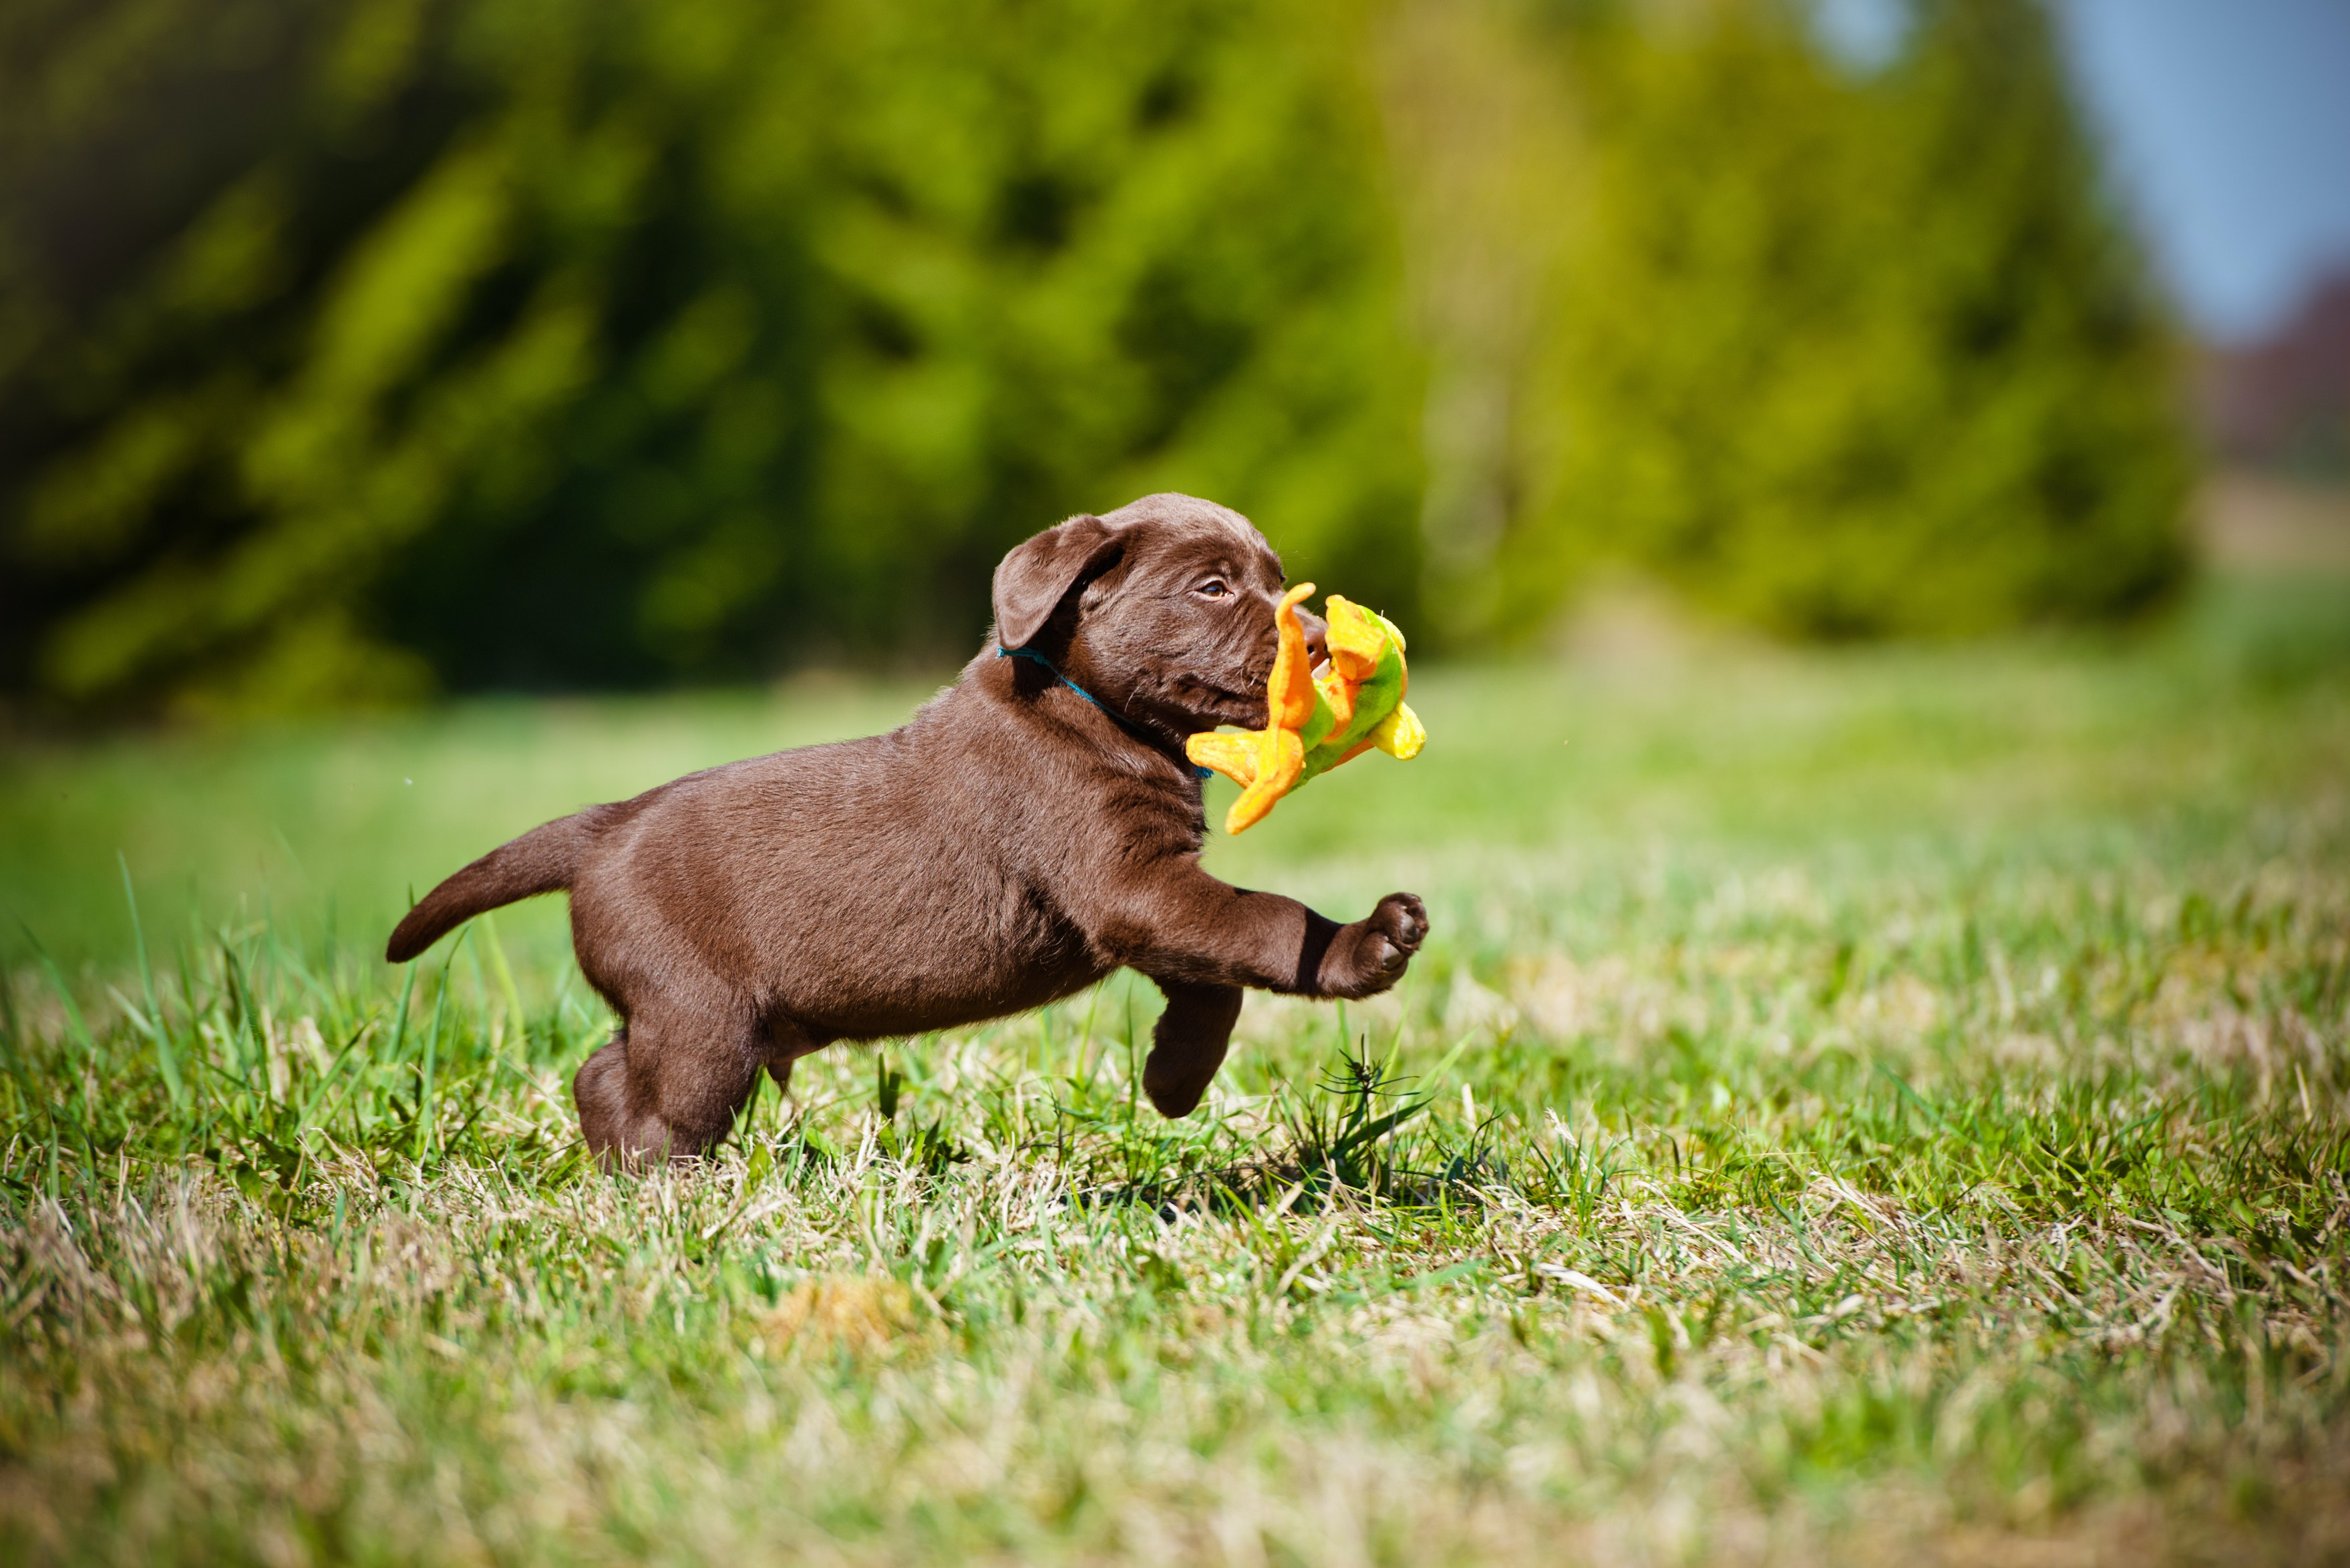 Chocolate Labradors die earlier than yellow or black, and have more disease